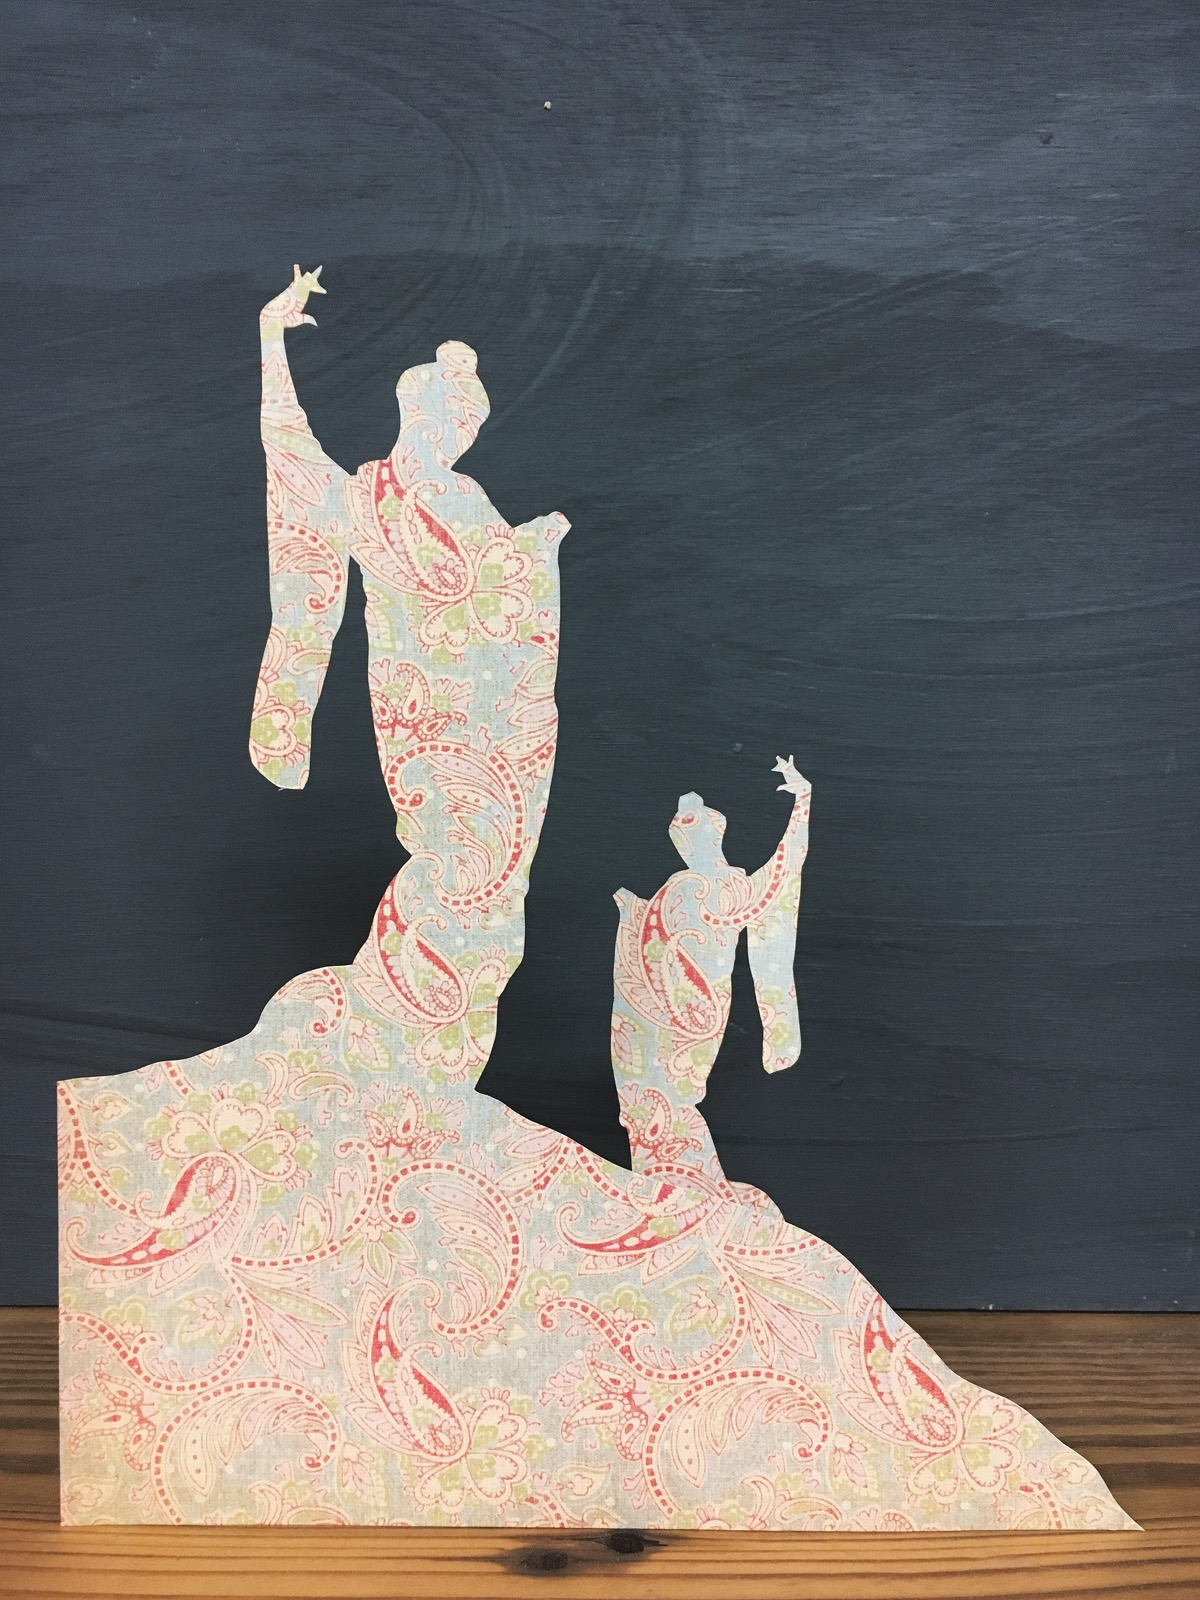 Pair of Japanese dancers, hand cut from vintage paisley patterned paper